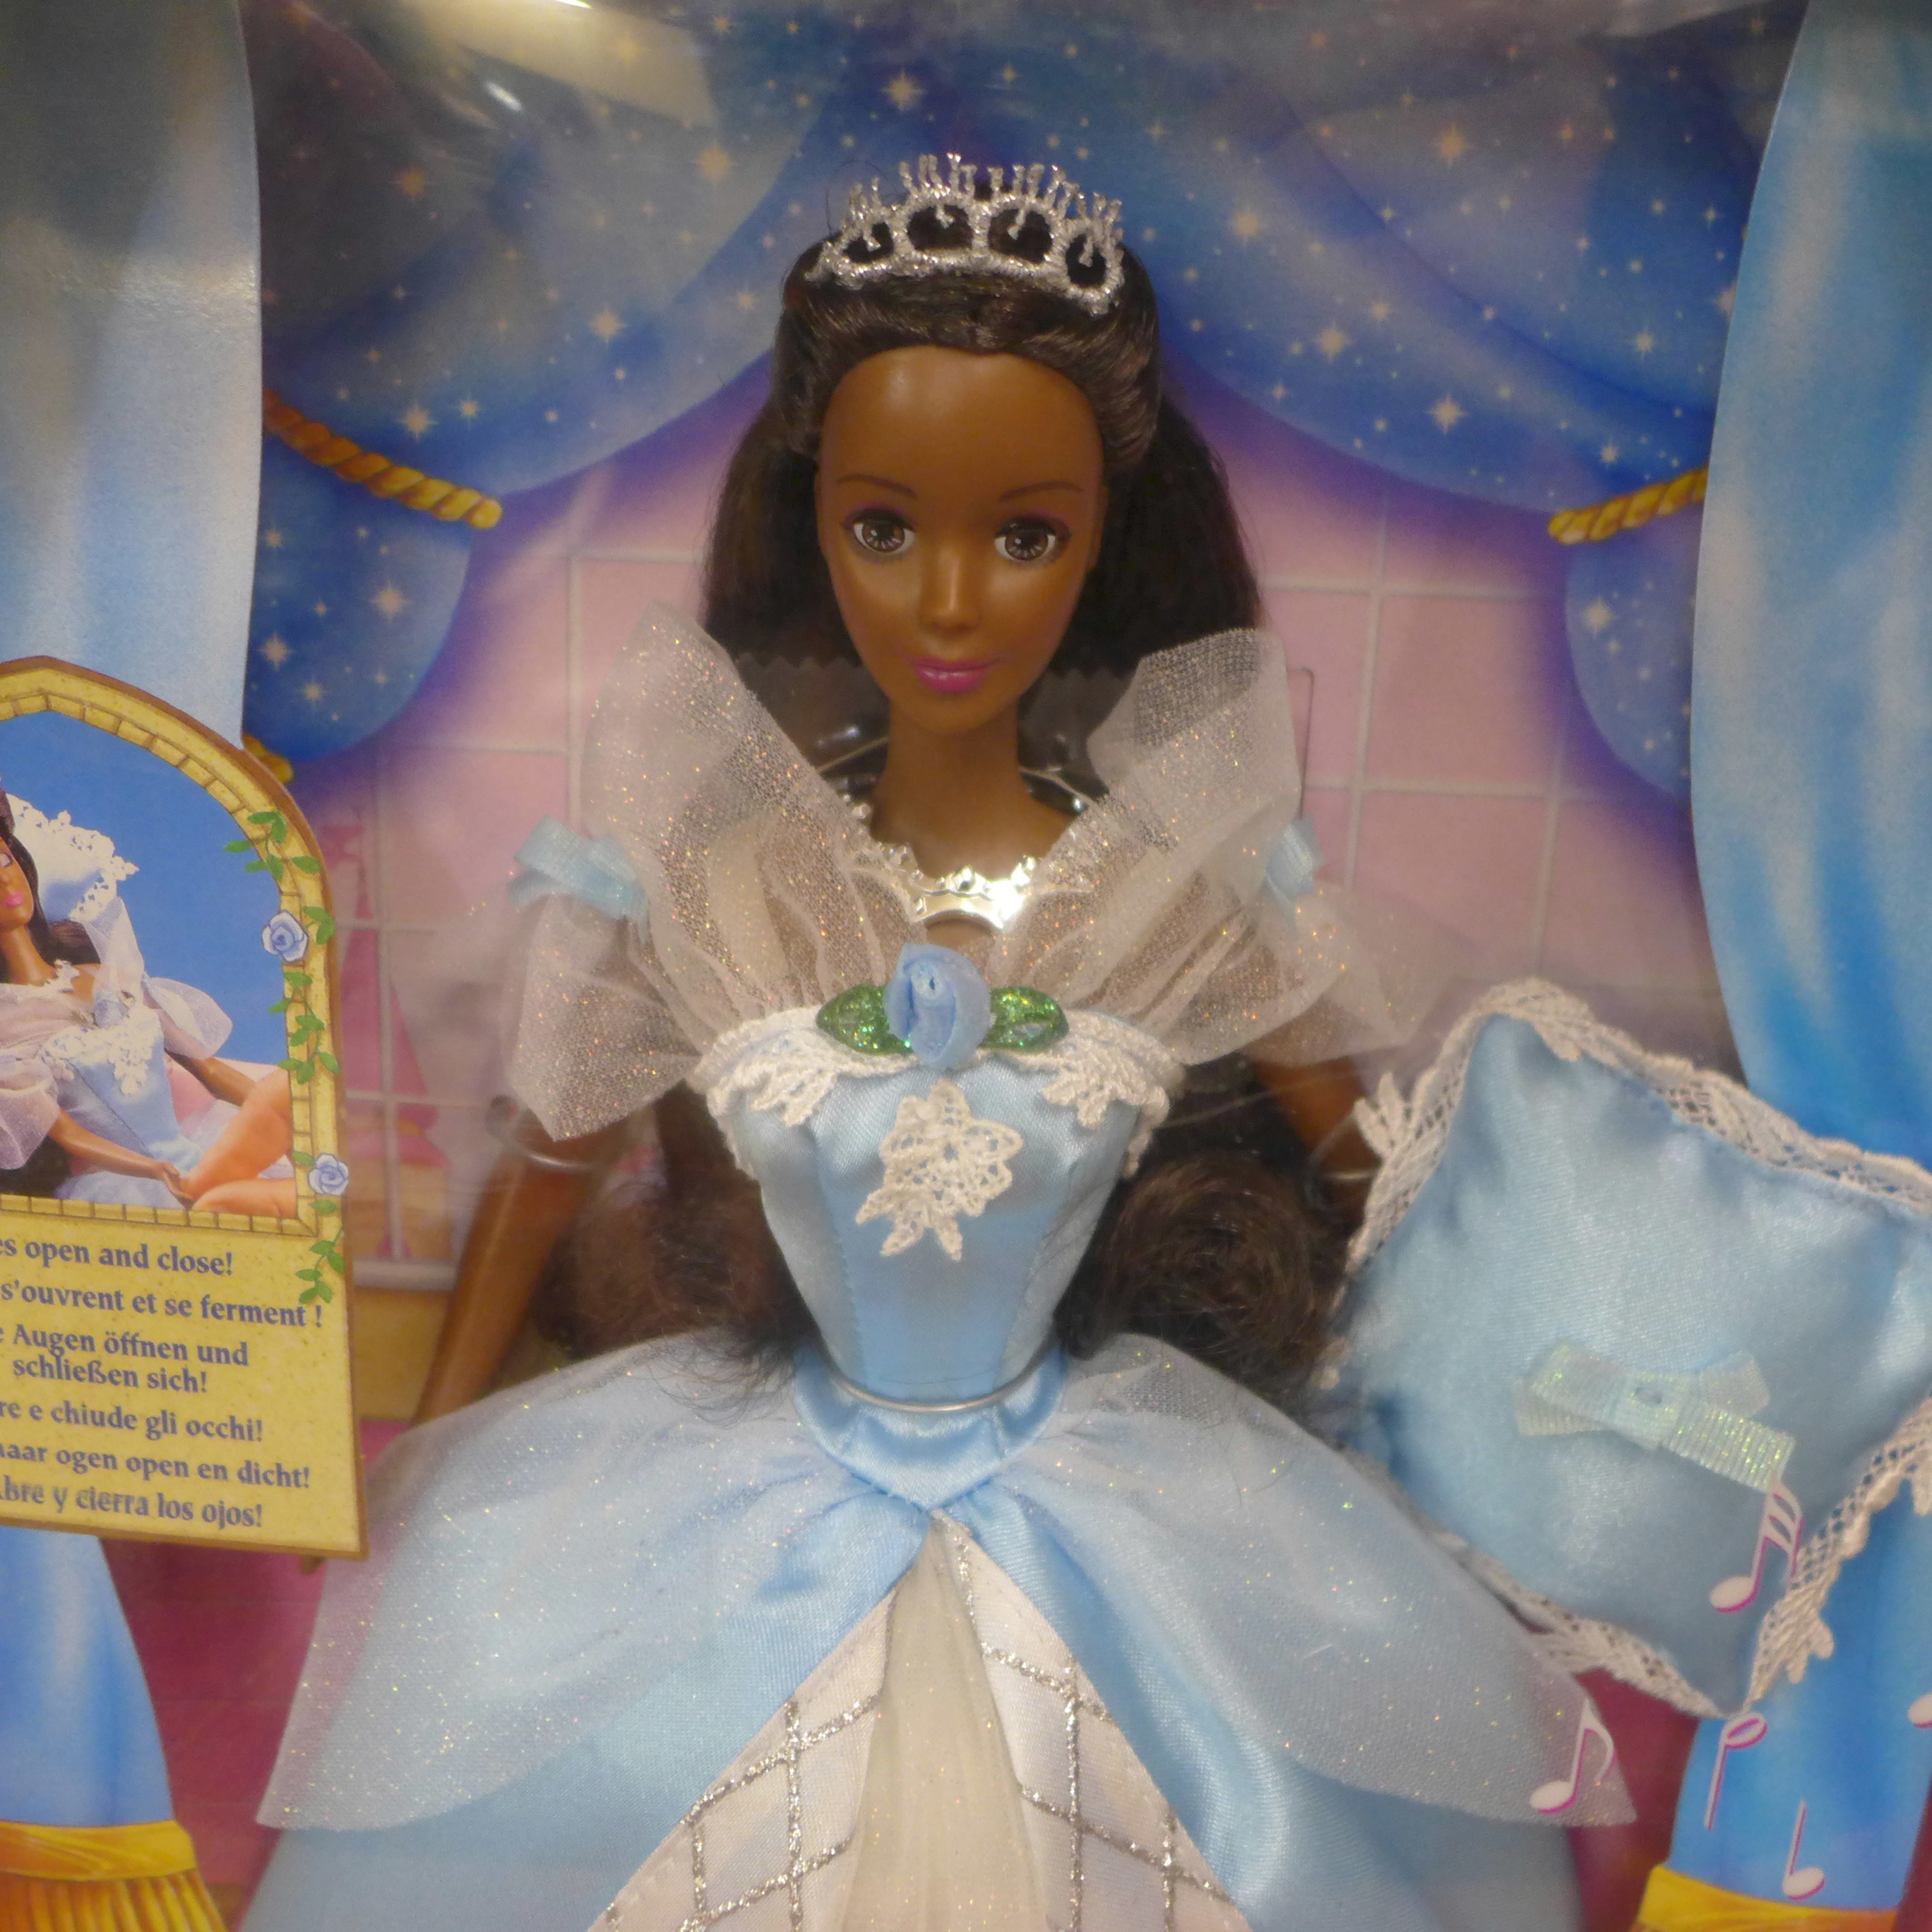 A Barbie doll, Black Sleeping Beauty, complete with box, 1998 - Image 2 of 3